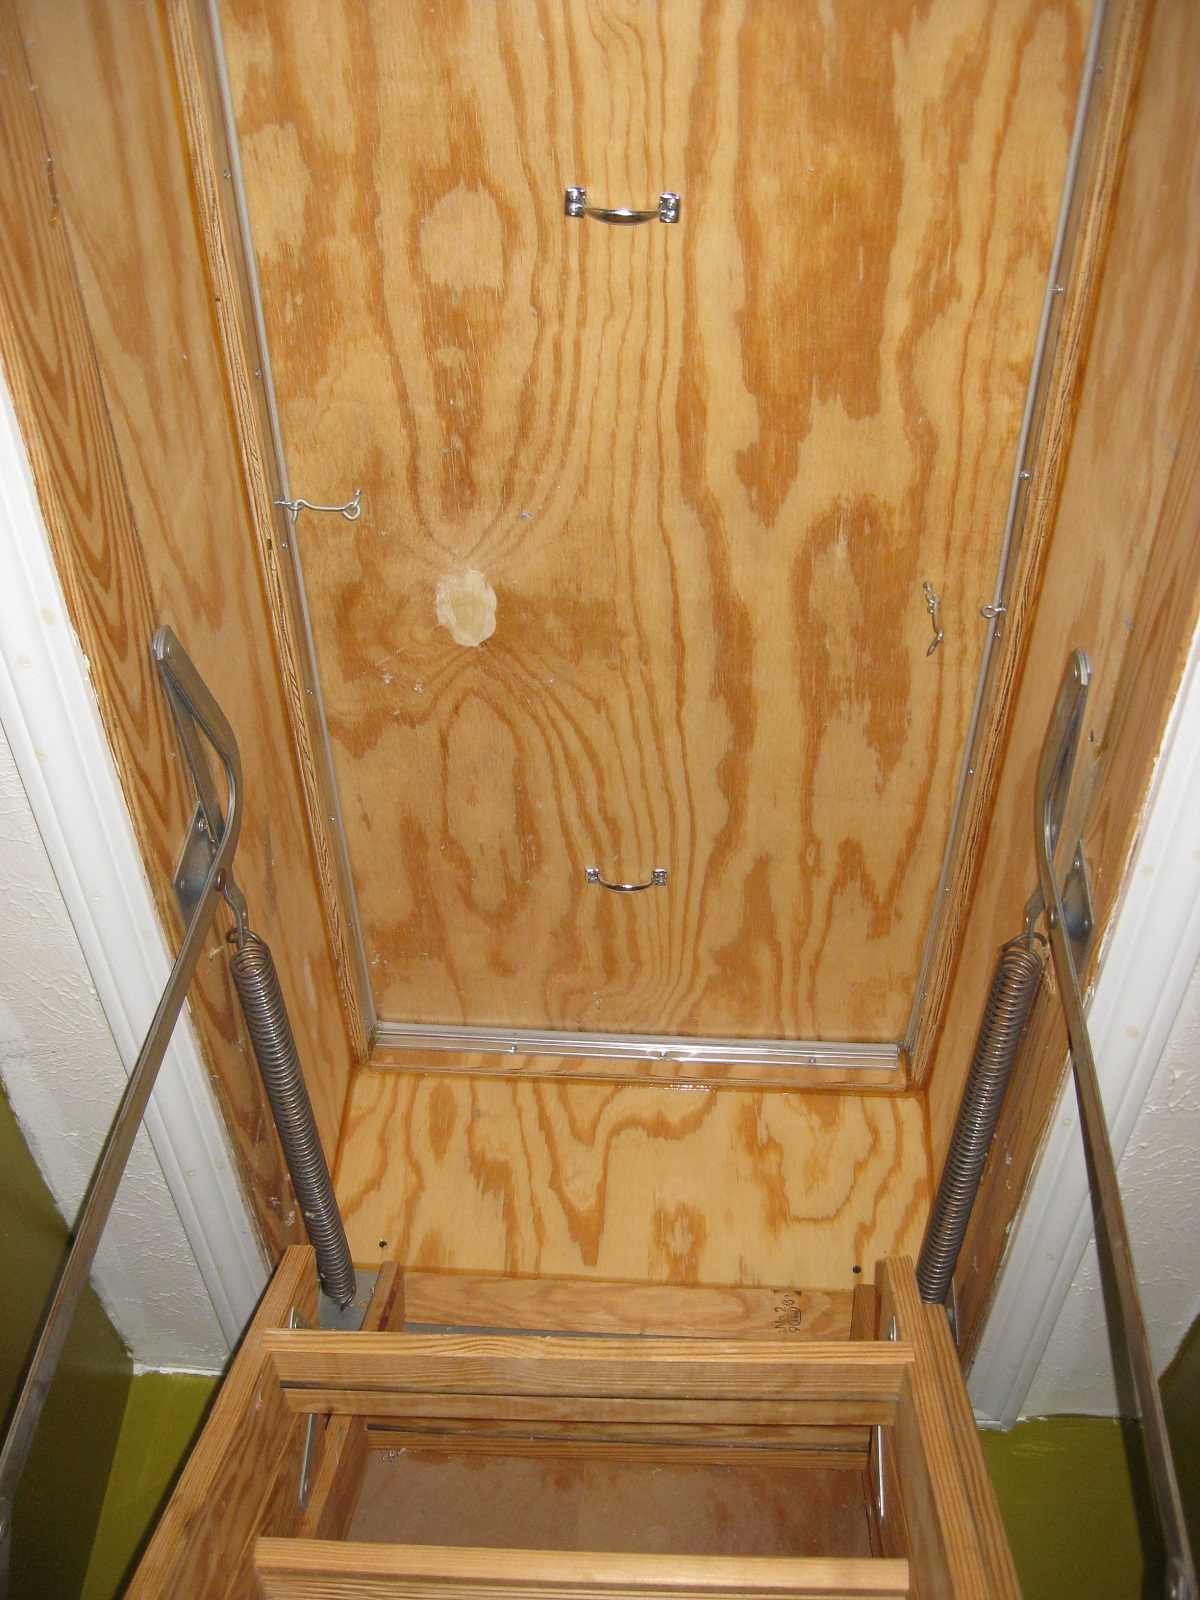 A well air-sealed home-made cover for pull-down stairs